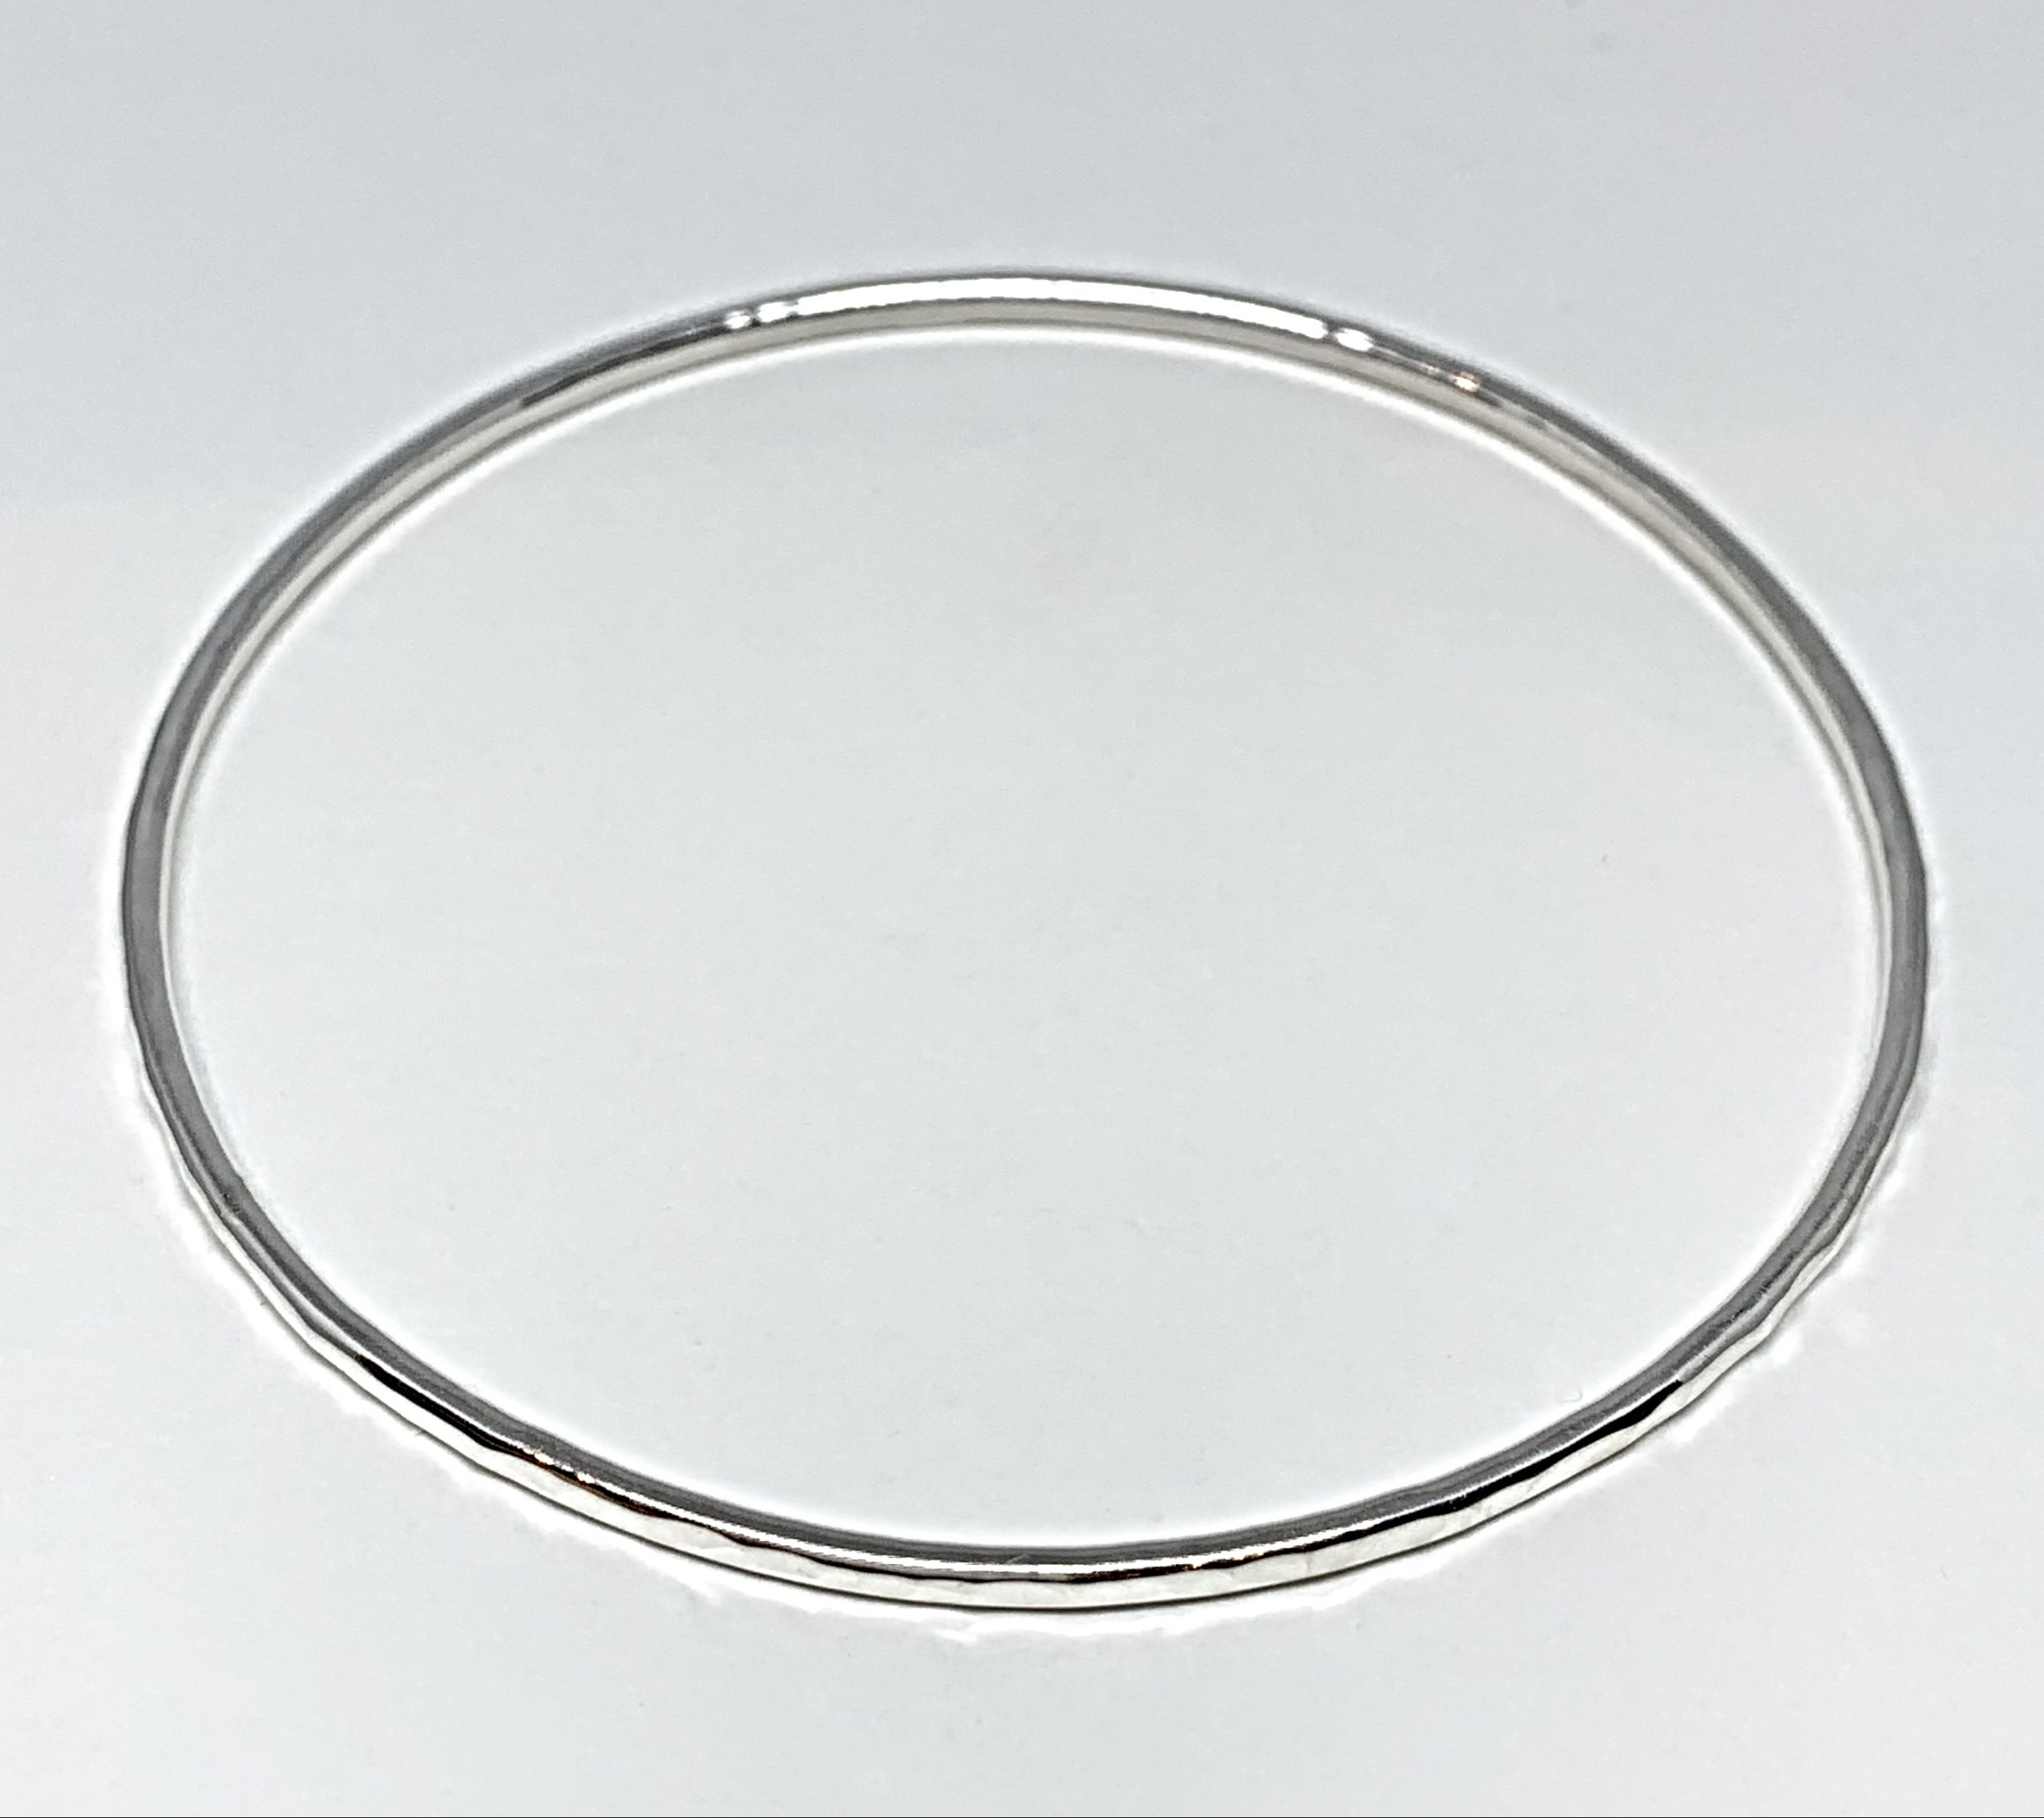 Sterling silver bangle by Karyn Chopik | Effusion Art Gallery + Cast Glass Studio, Invermere BC